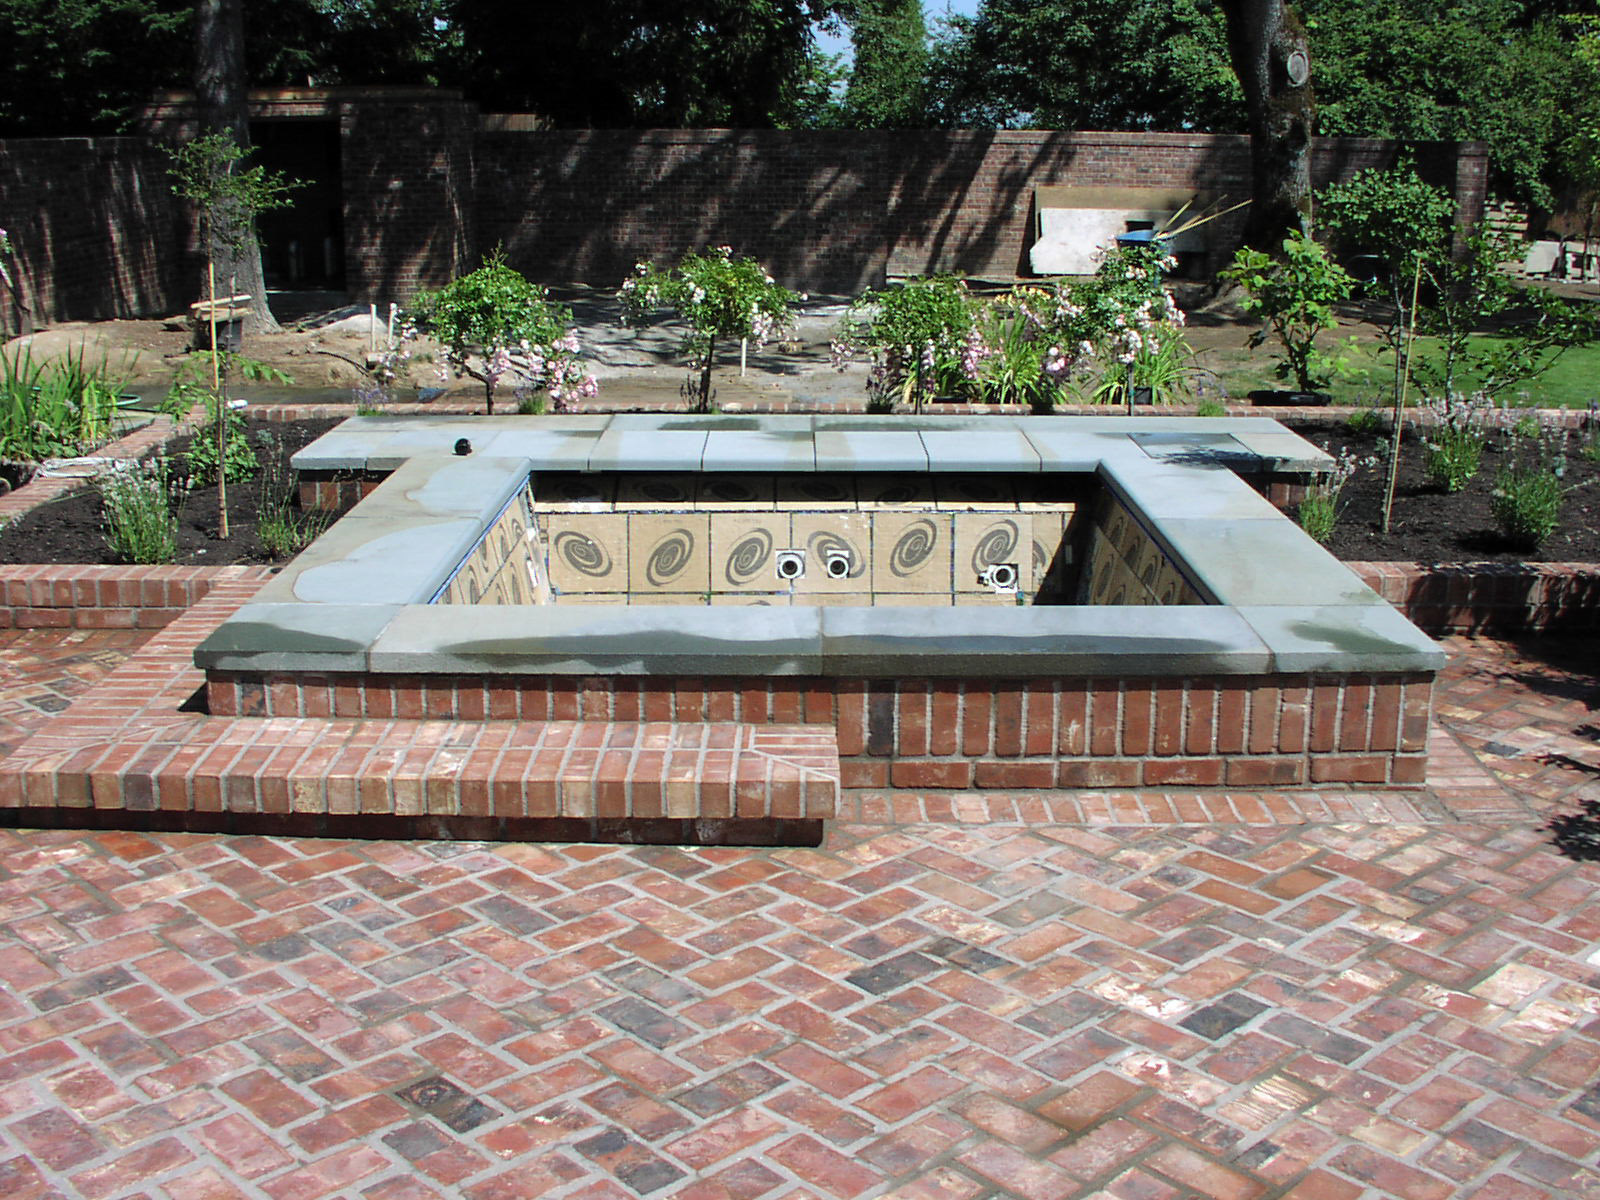 Brick Patio With Jacuzzi On Top